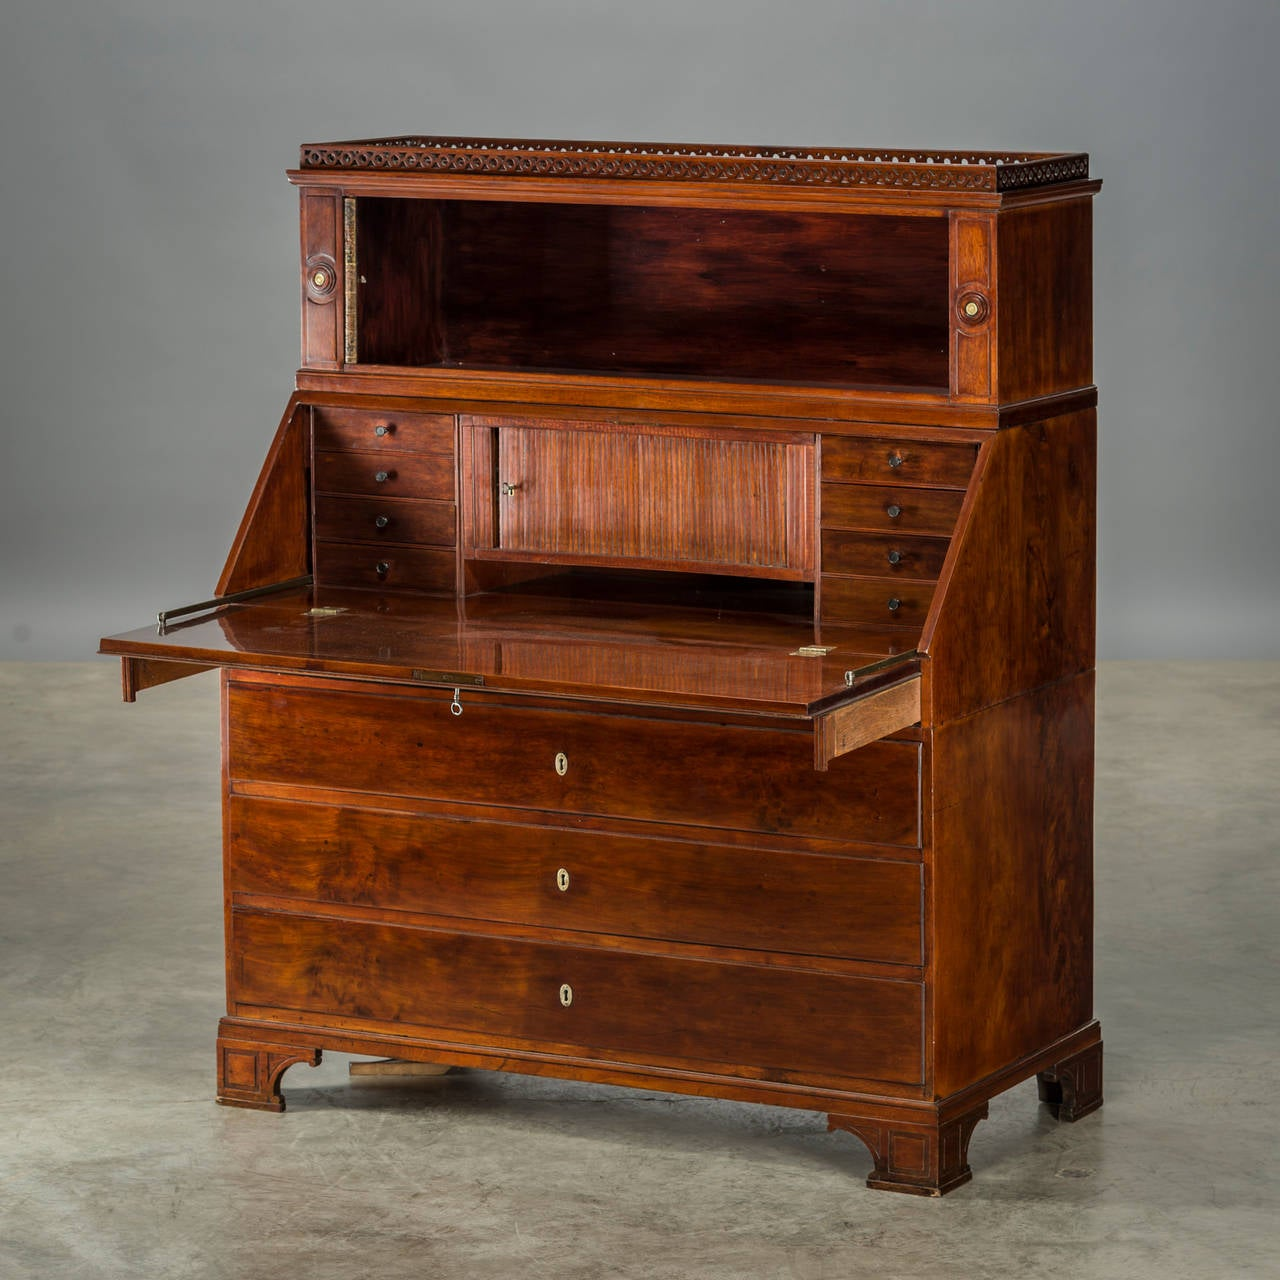 Louis xvi bureau copenhagen circa 1780 for sale at 1stdibs for Bureau louis xvi